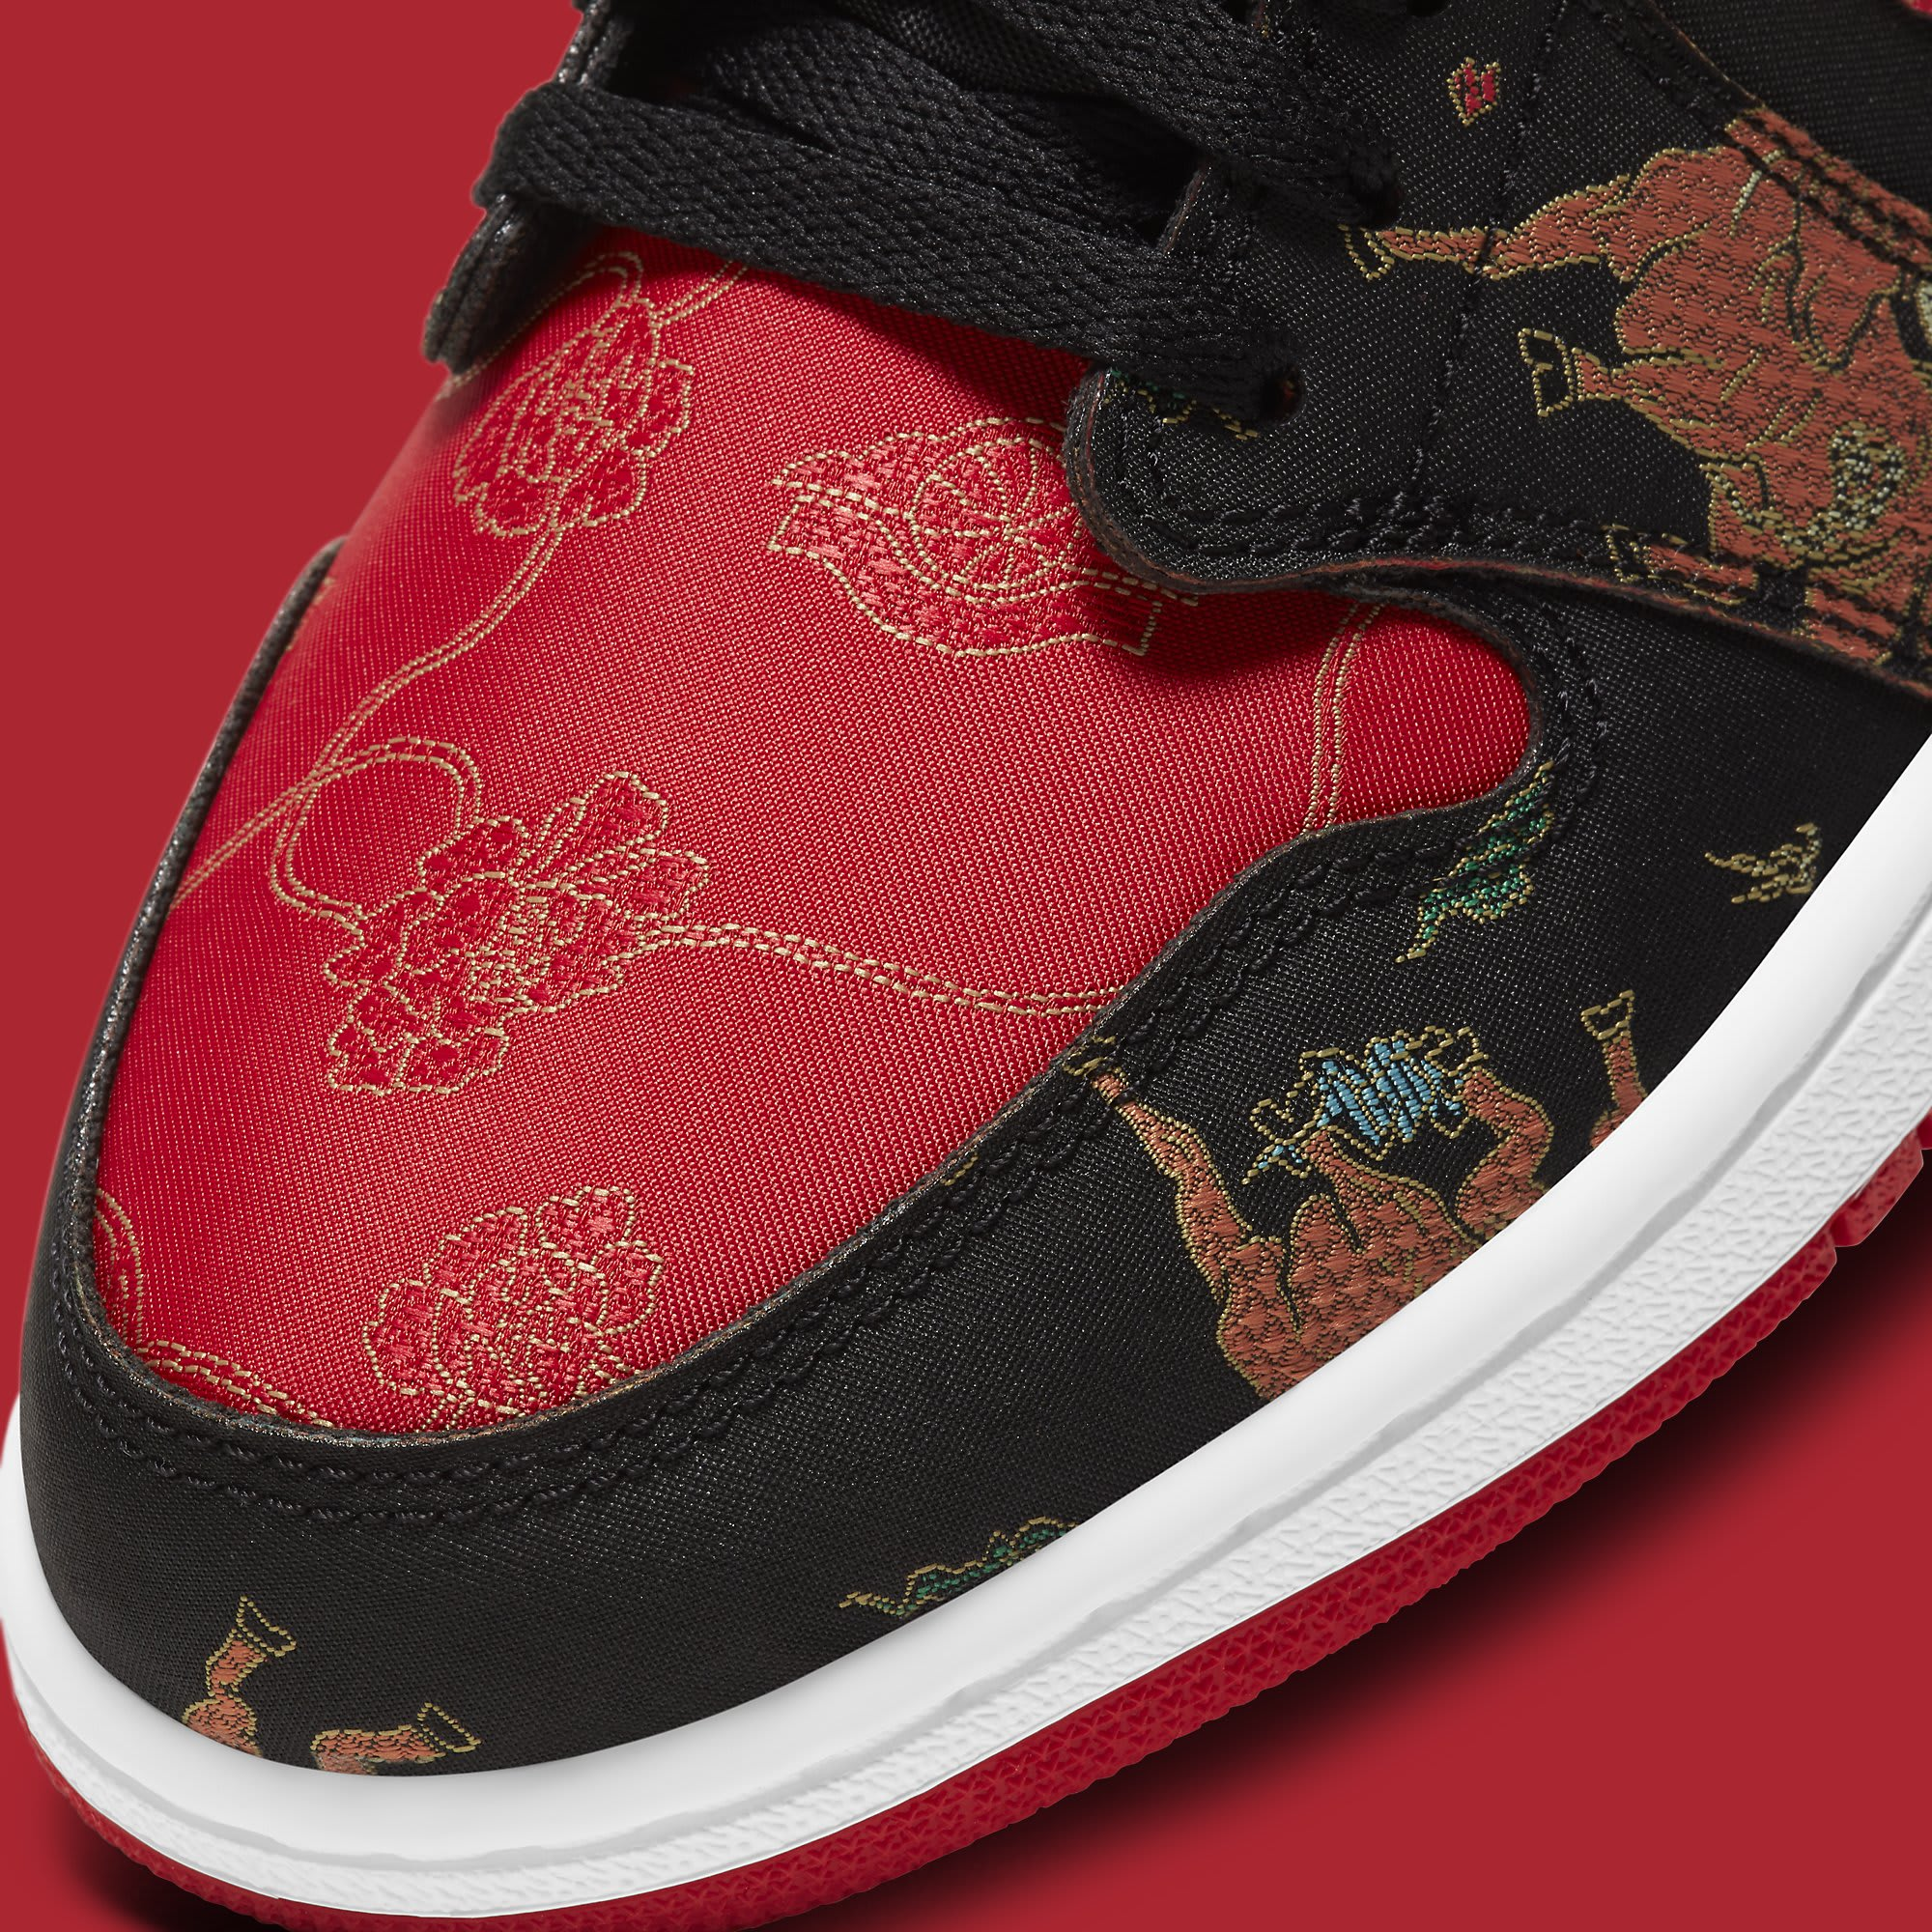 Air Jordan 1 Retro Low OG 'Chinese New Year' DD2233-001 Toe